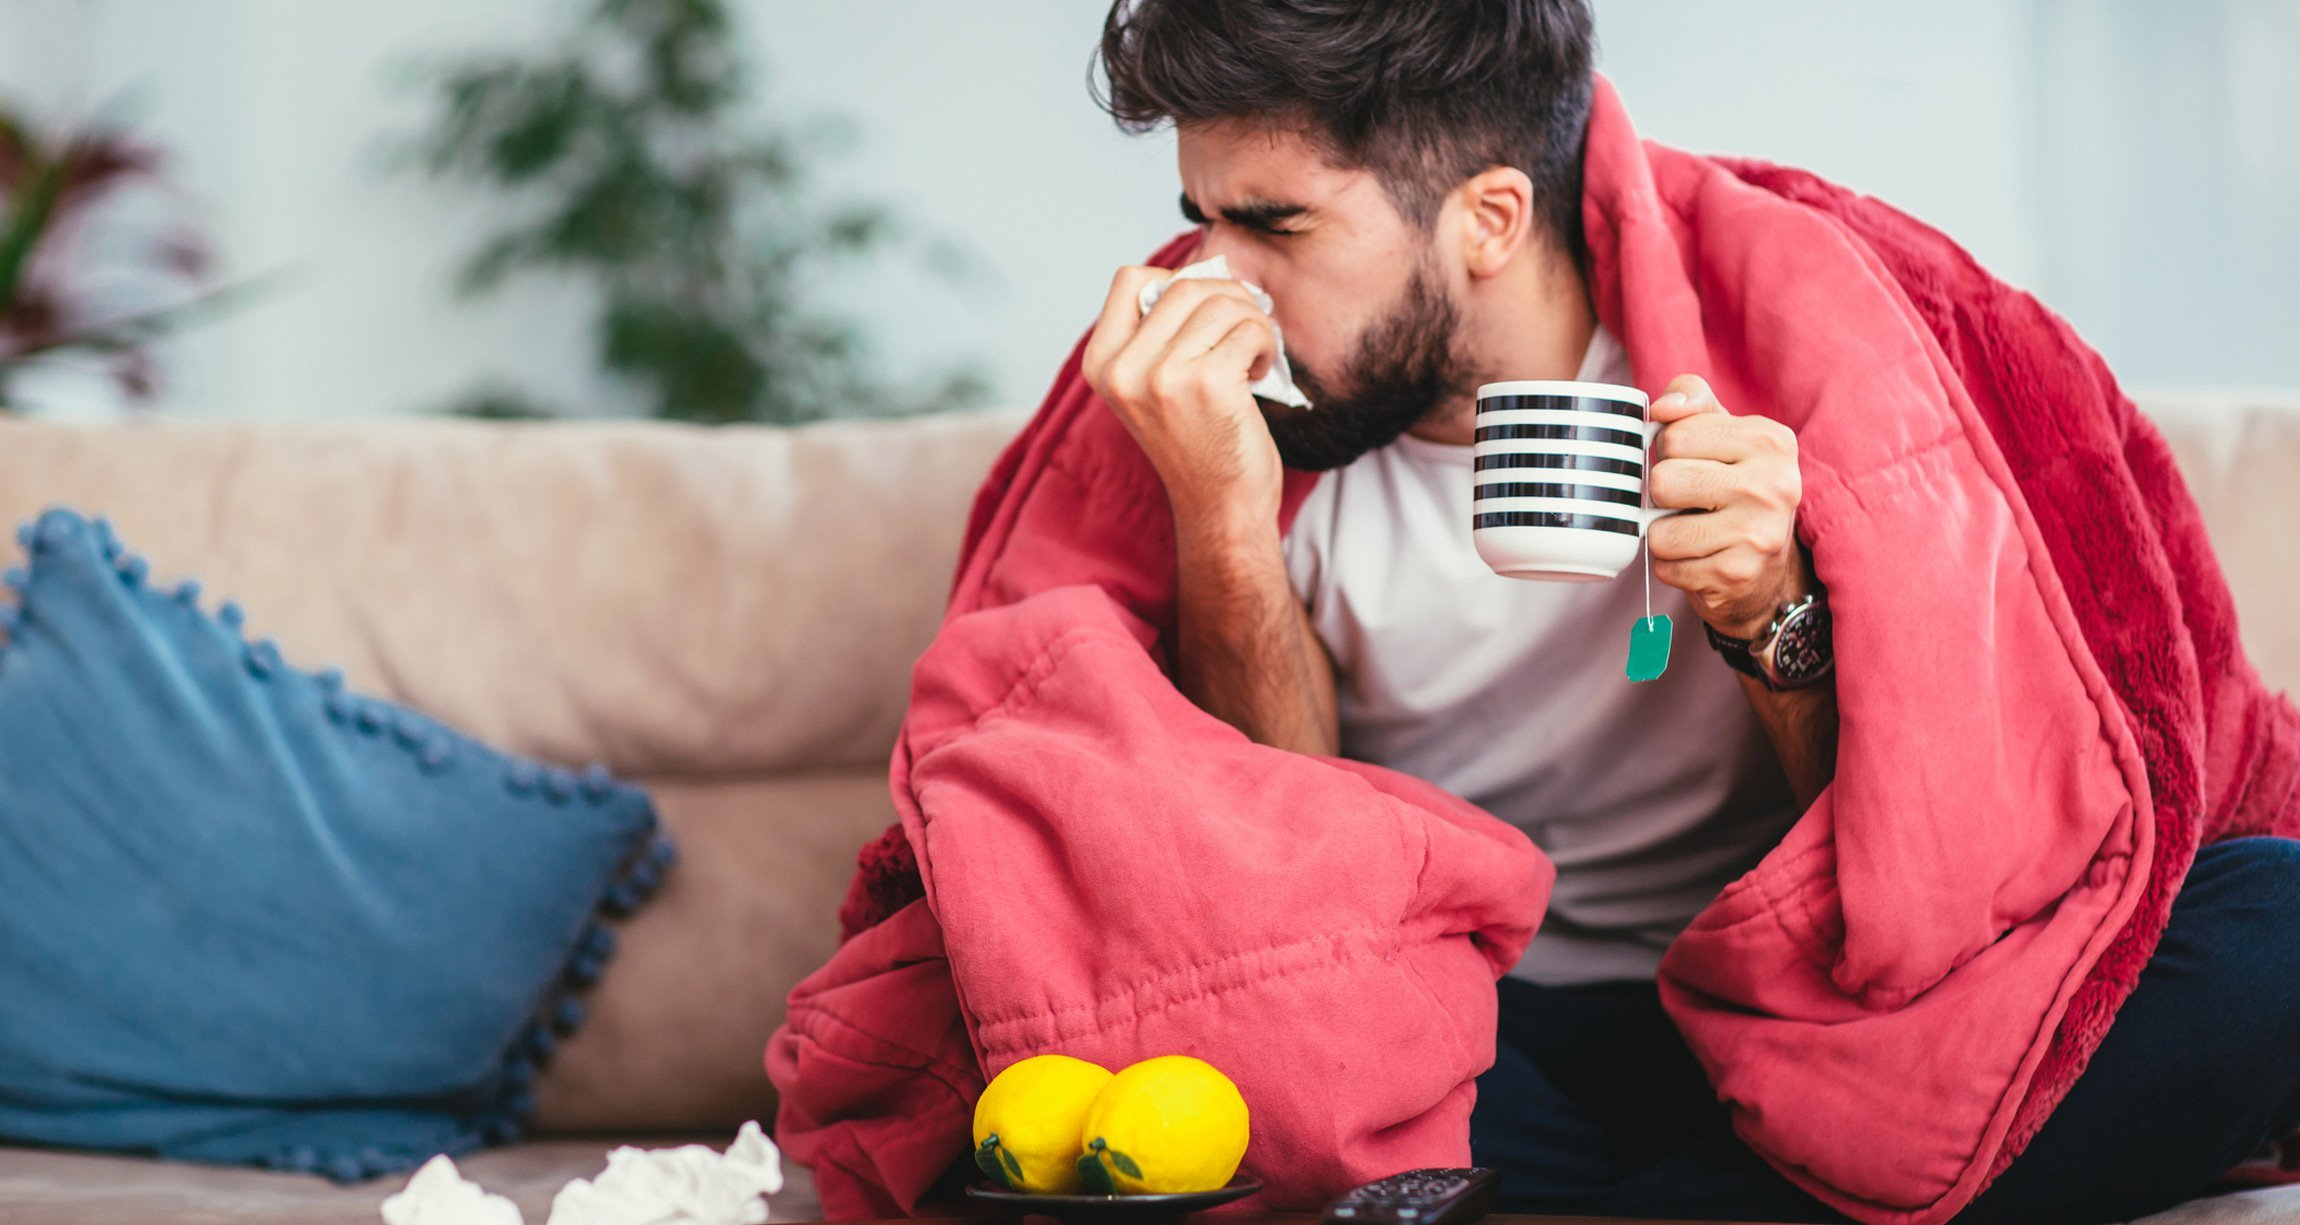 Man sick with a blanket, tea, lemons, and blowing his nose